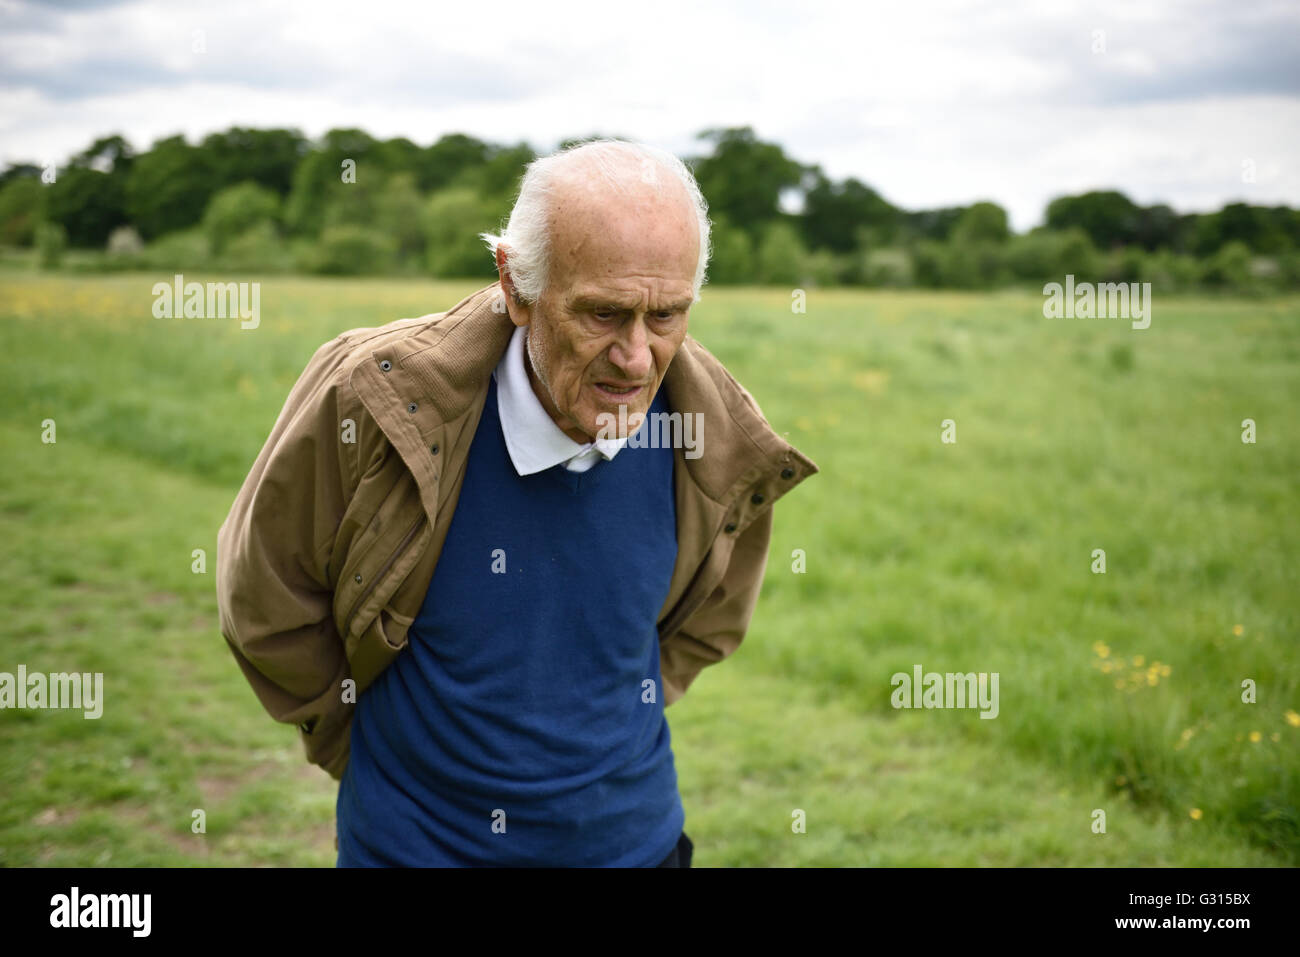 An elderly man with dementia looking thoughtful, walking on his own in the countryside looking confused and vulnerable. - Stock Image